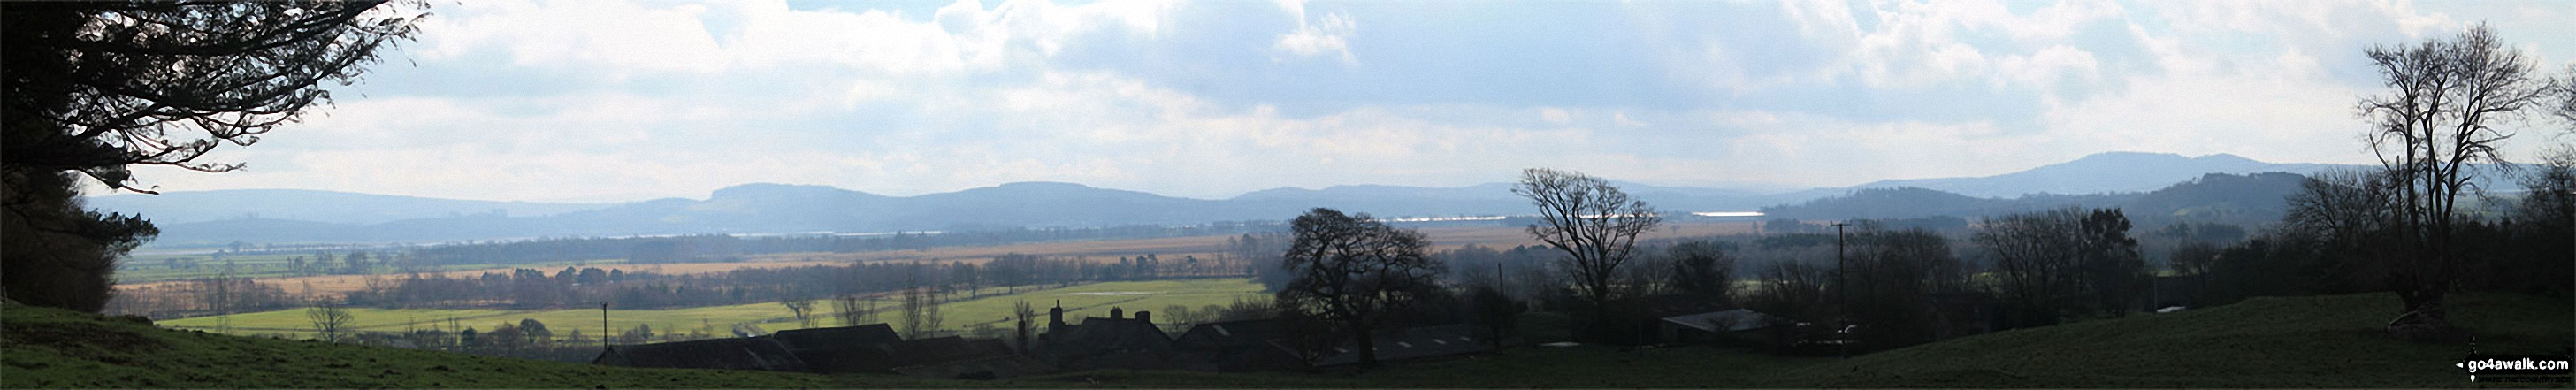 Looking South across Foulshaw Moss to Milnthorpe Sands,  Arnside Knott and The forest of Bowland from Buckhouse Wood above Mill Side